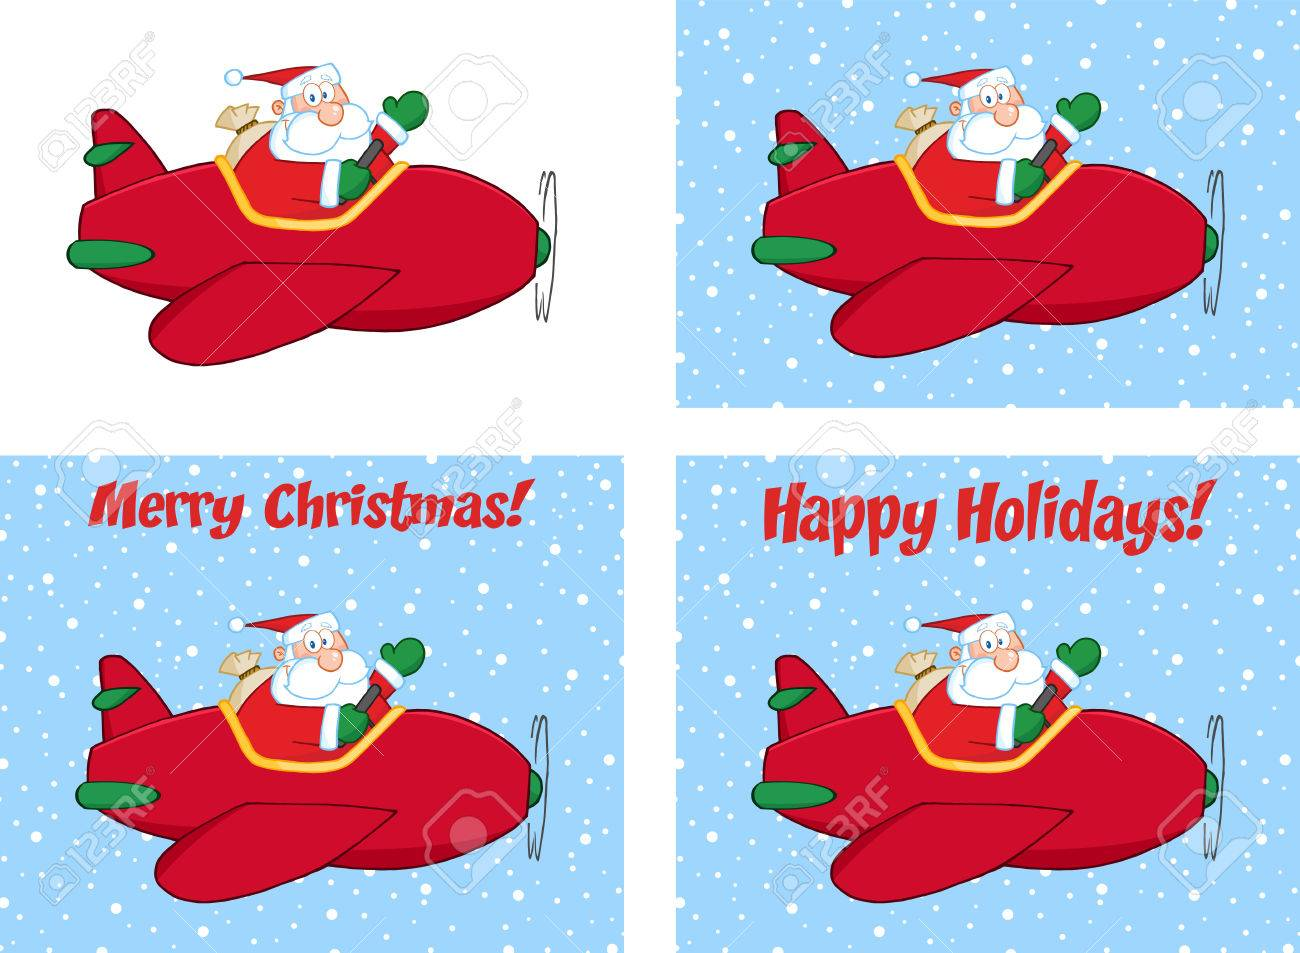 Merry christmas greeting with santa claus flying a plane and merry christmas greeting with santa claus flying a plane and waving collection set stock vector kristyandbryce Choice Image